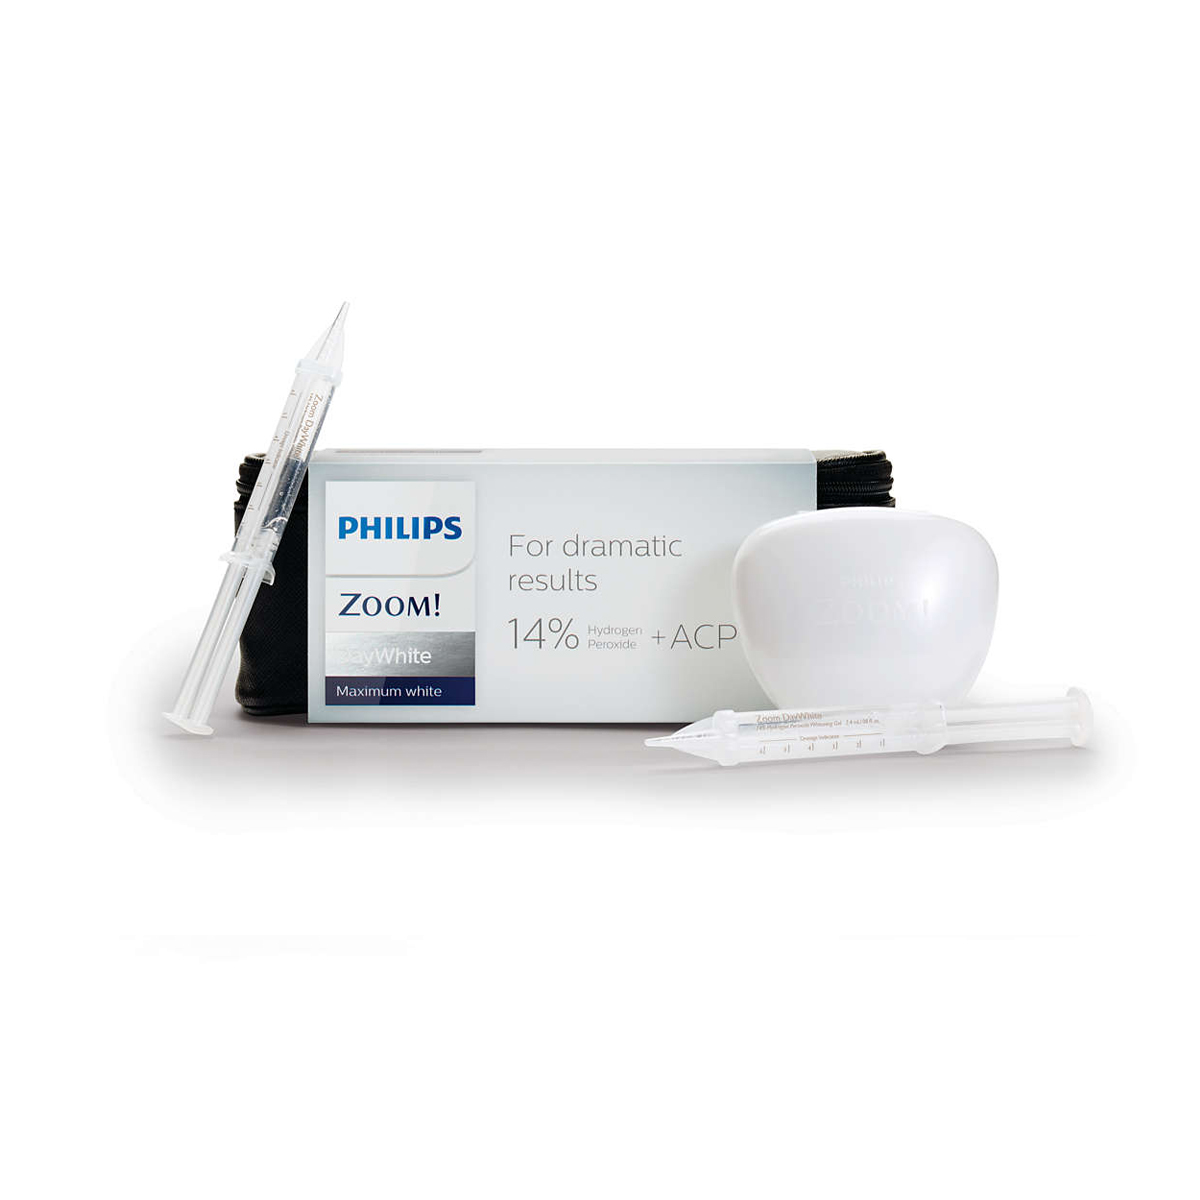 philips-zoom-daywhite-14-kit.jpg